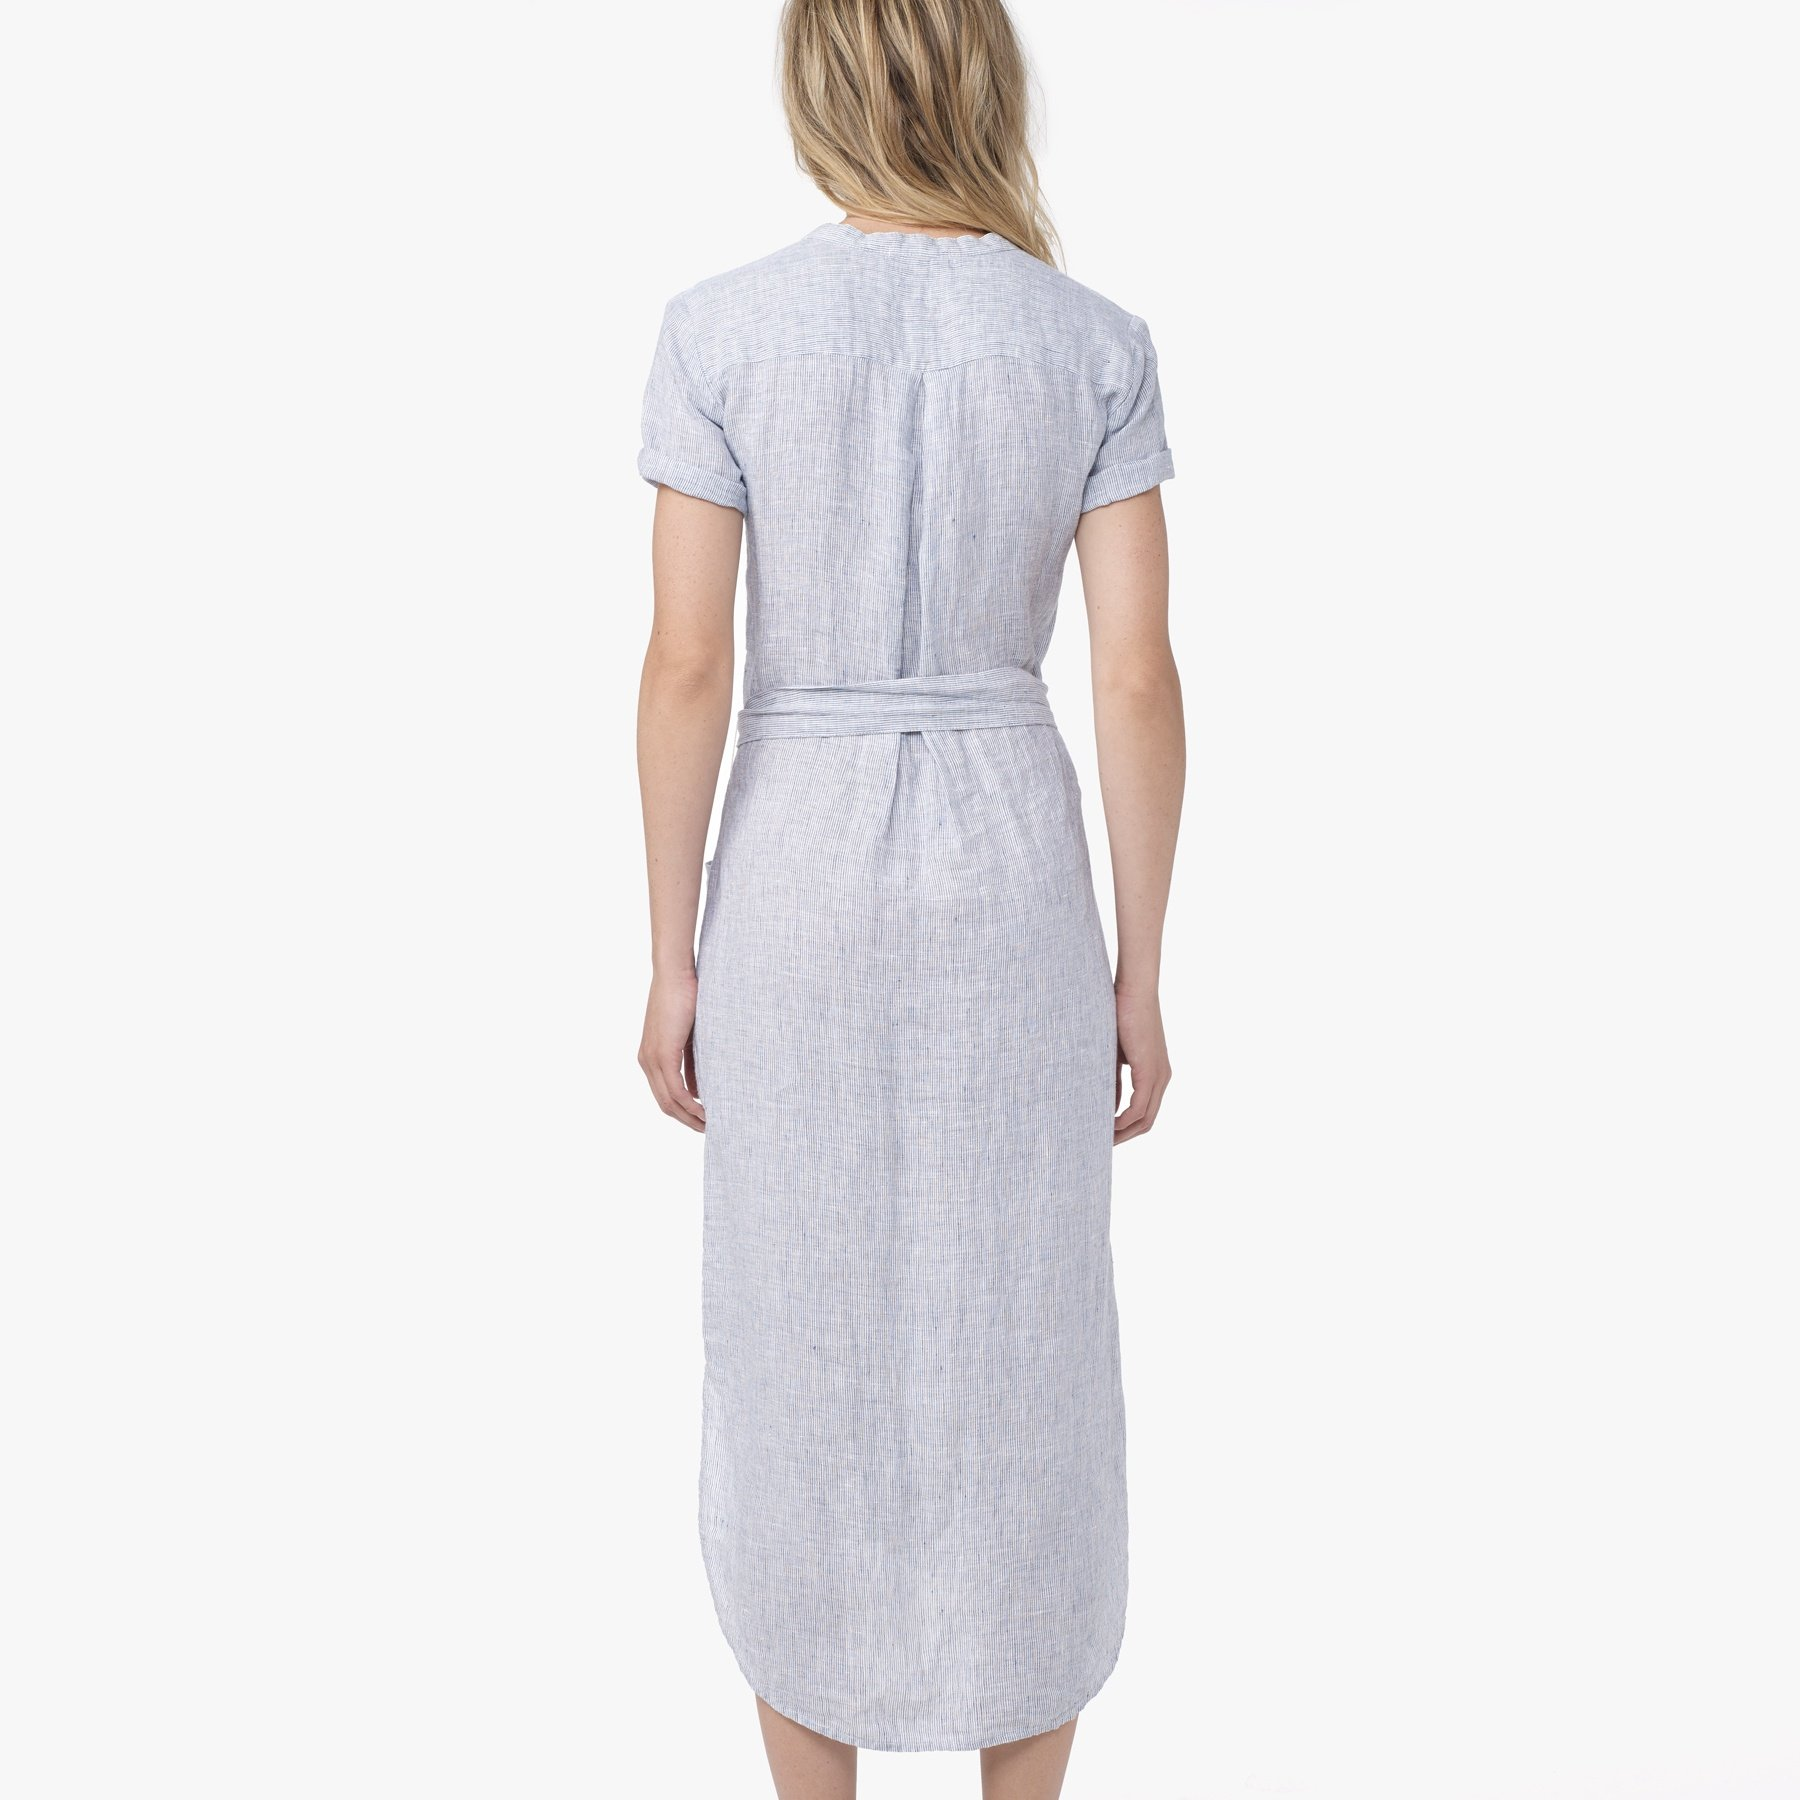 7e9fd15210 James Perse Linen Stripe Shirt Dress in Blue - Lyst